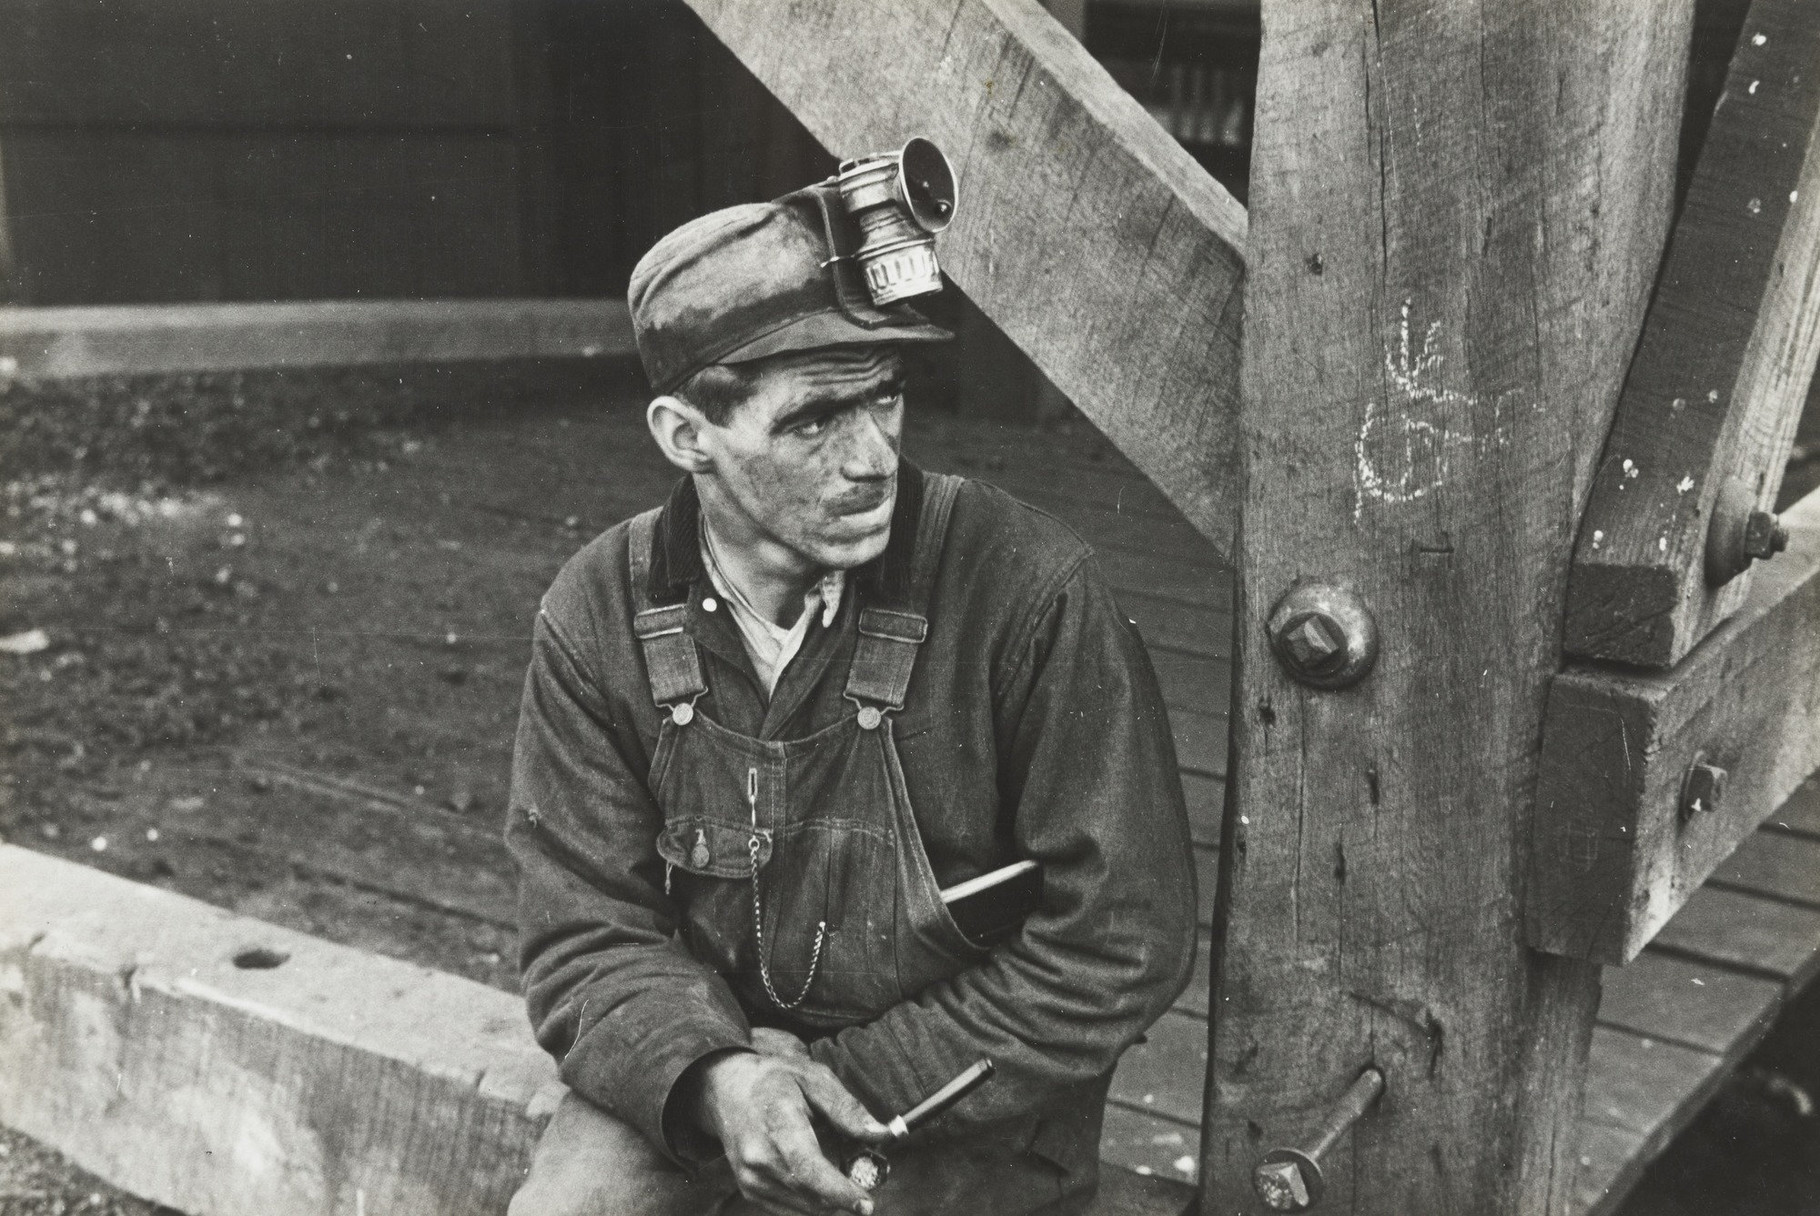 Coal miner in Jenkins, Kentucky (1935). Ben Shahn